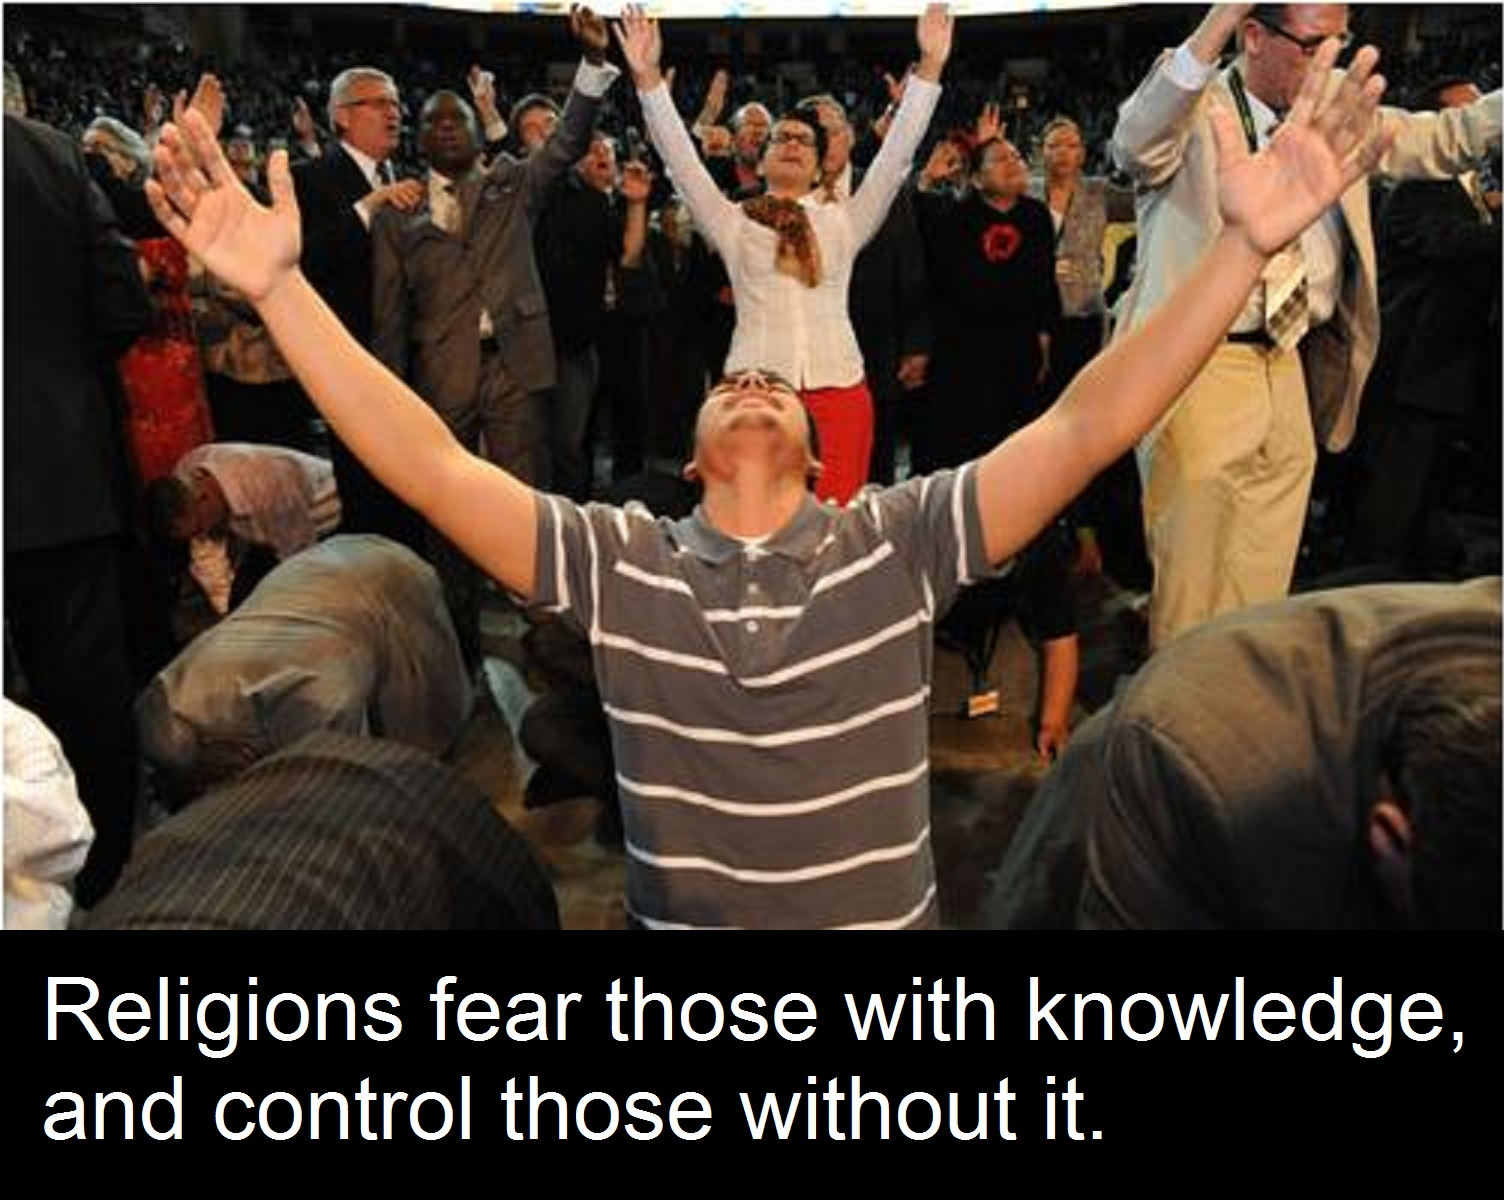 Religions fear those with knowledge, and control those without it.